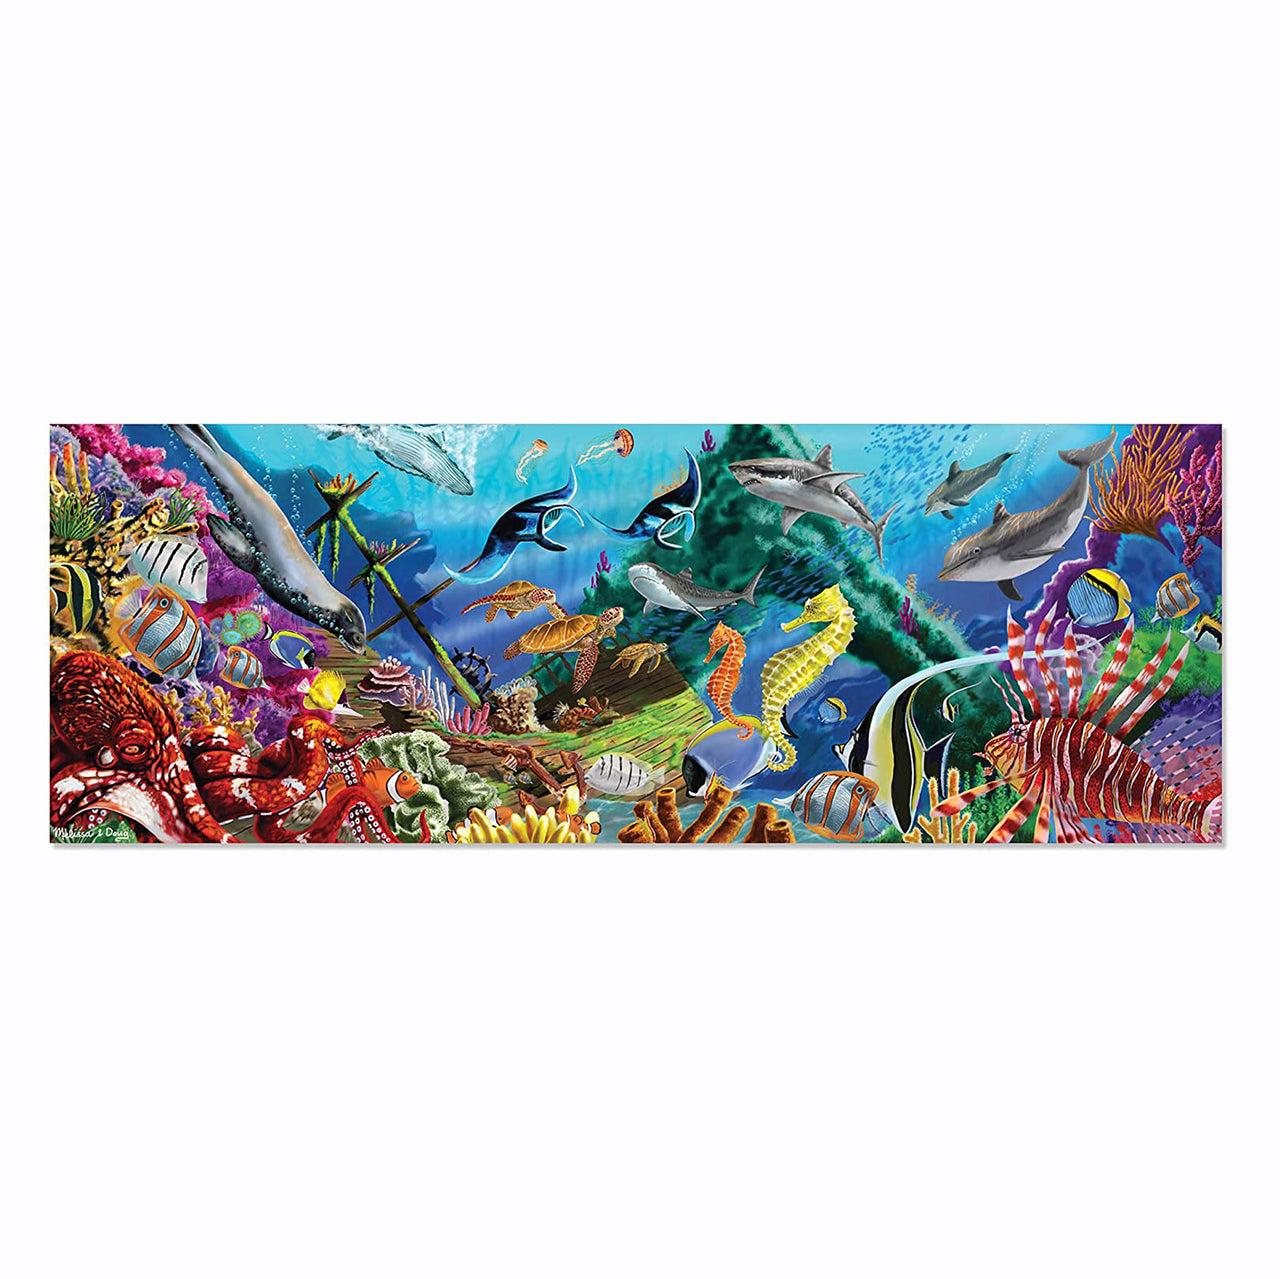 Challenge your kids to put together this 200 piece, beautiful Underwater Oasis jigsaw from Melissa and Doug. Complete the puzzle and explore the ocean depths with the beautiful underwater artwork. Over four feet long, this extra-thick puzzle features an easy-clean surface to keep it looking like new.